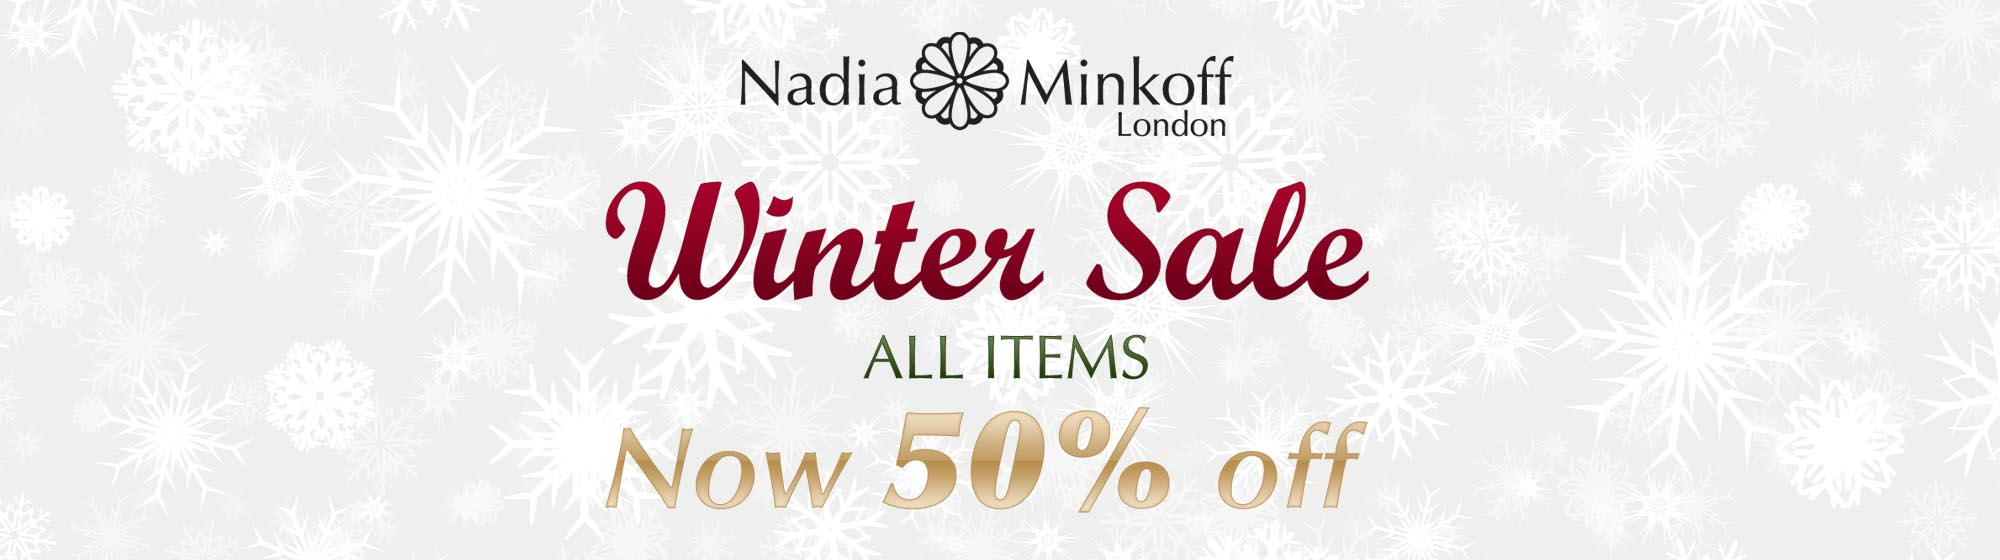 winter-sale-banner-3